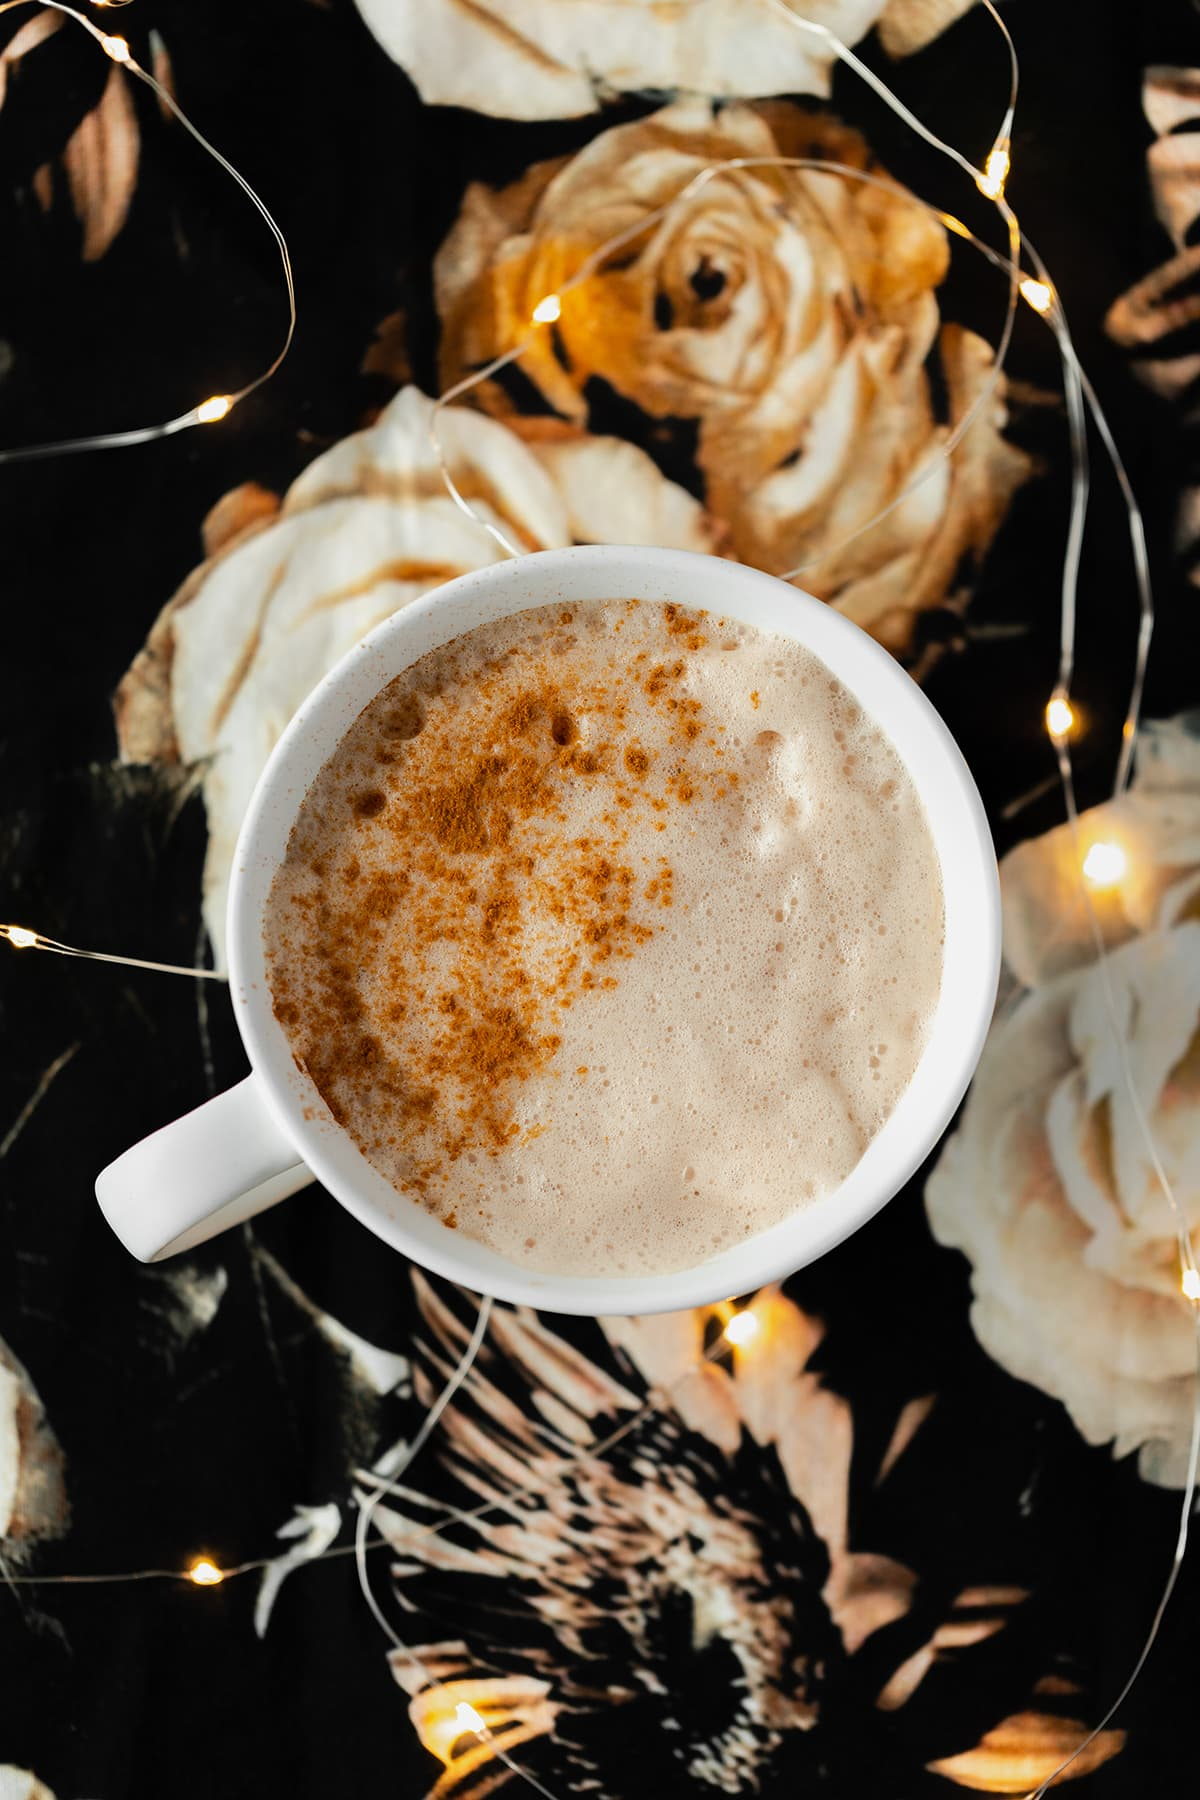 Blossoming Rose Tea Latte in a white mug with a light dusting of cinnamon on the left side. On a black table cloth with beige rose print. Fairy lights around mug.